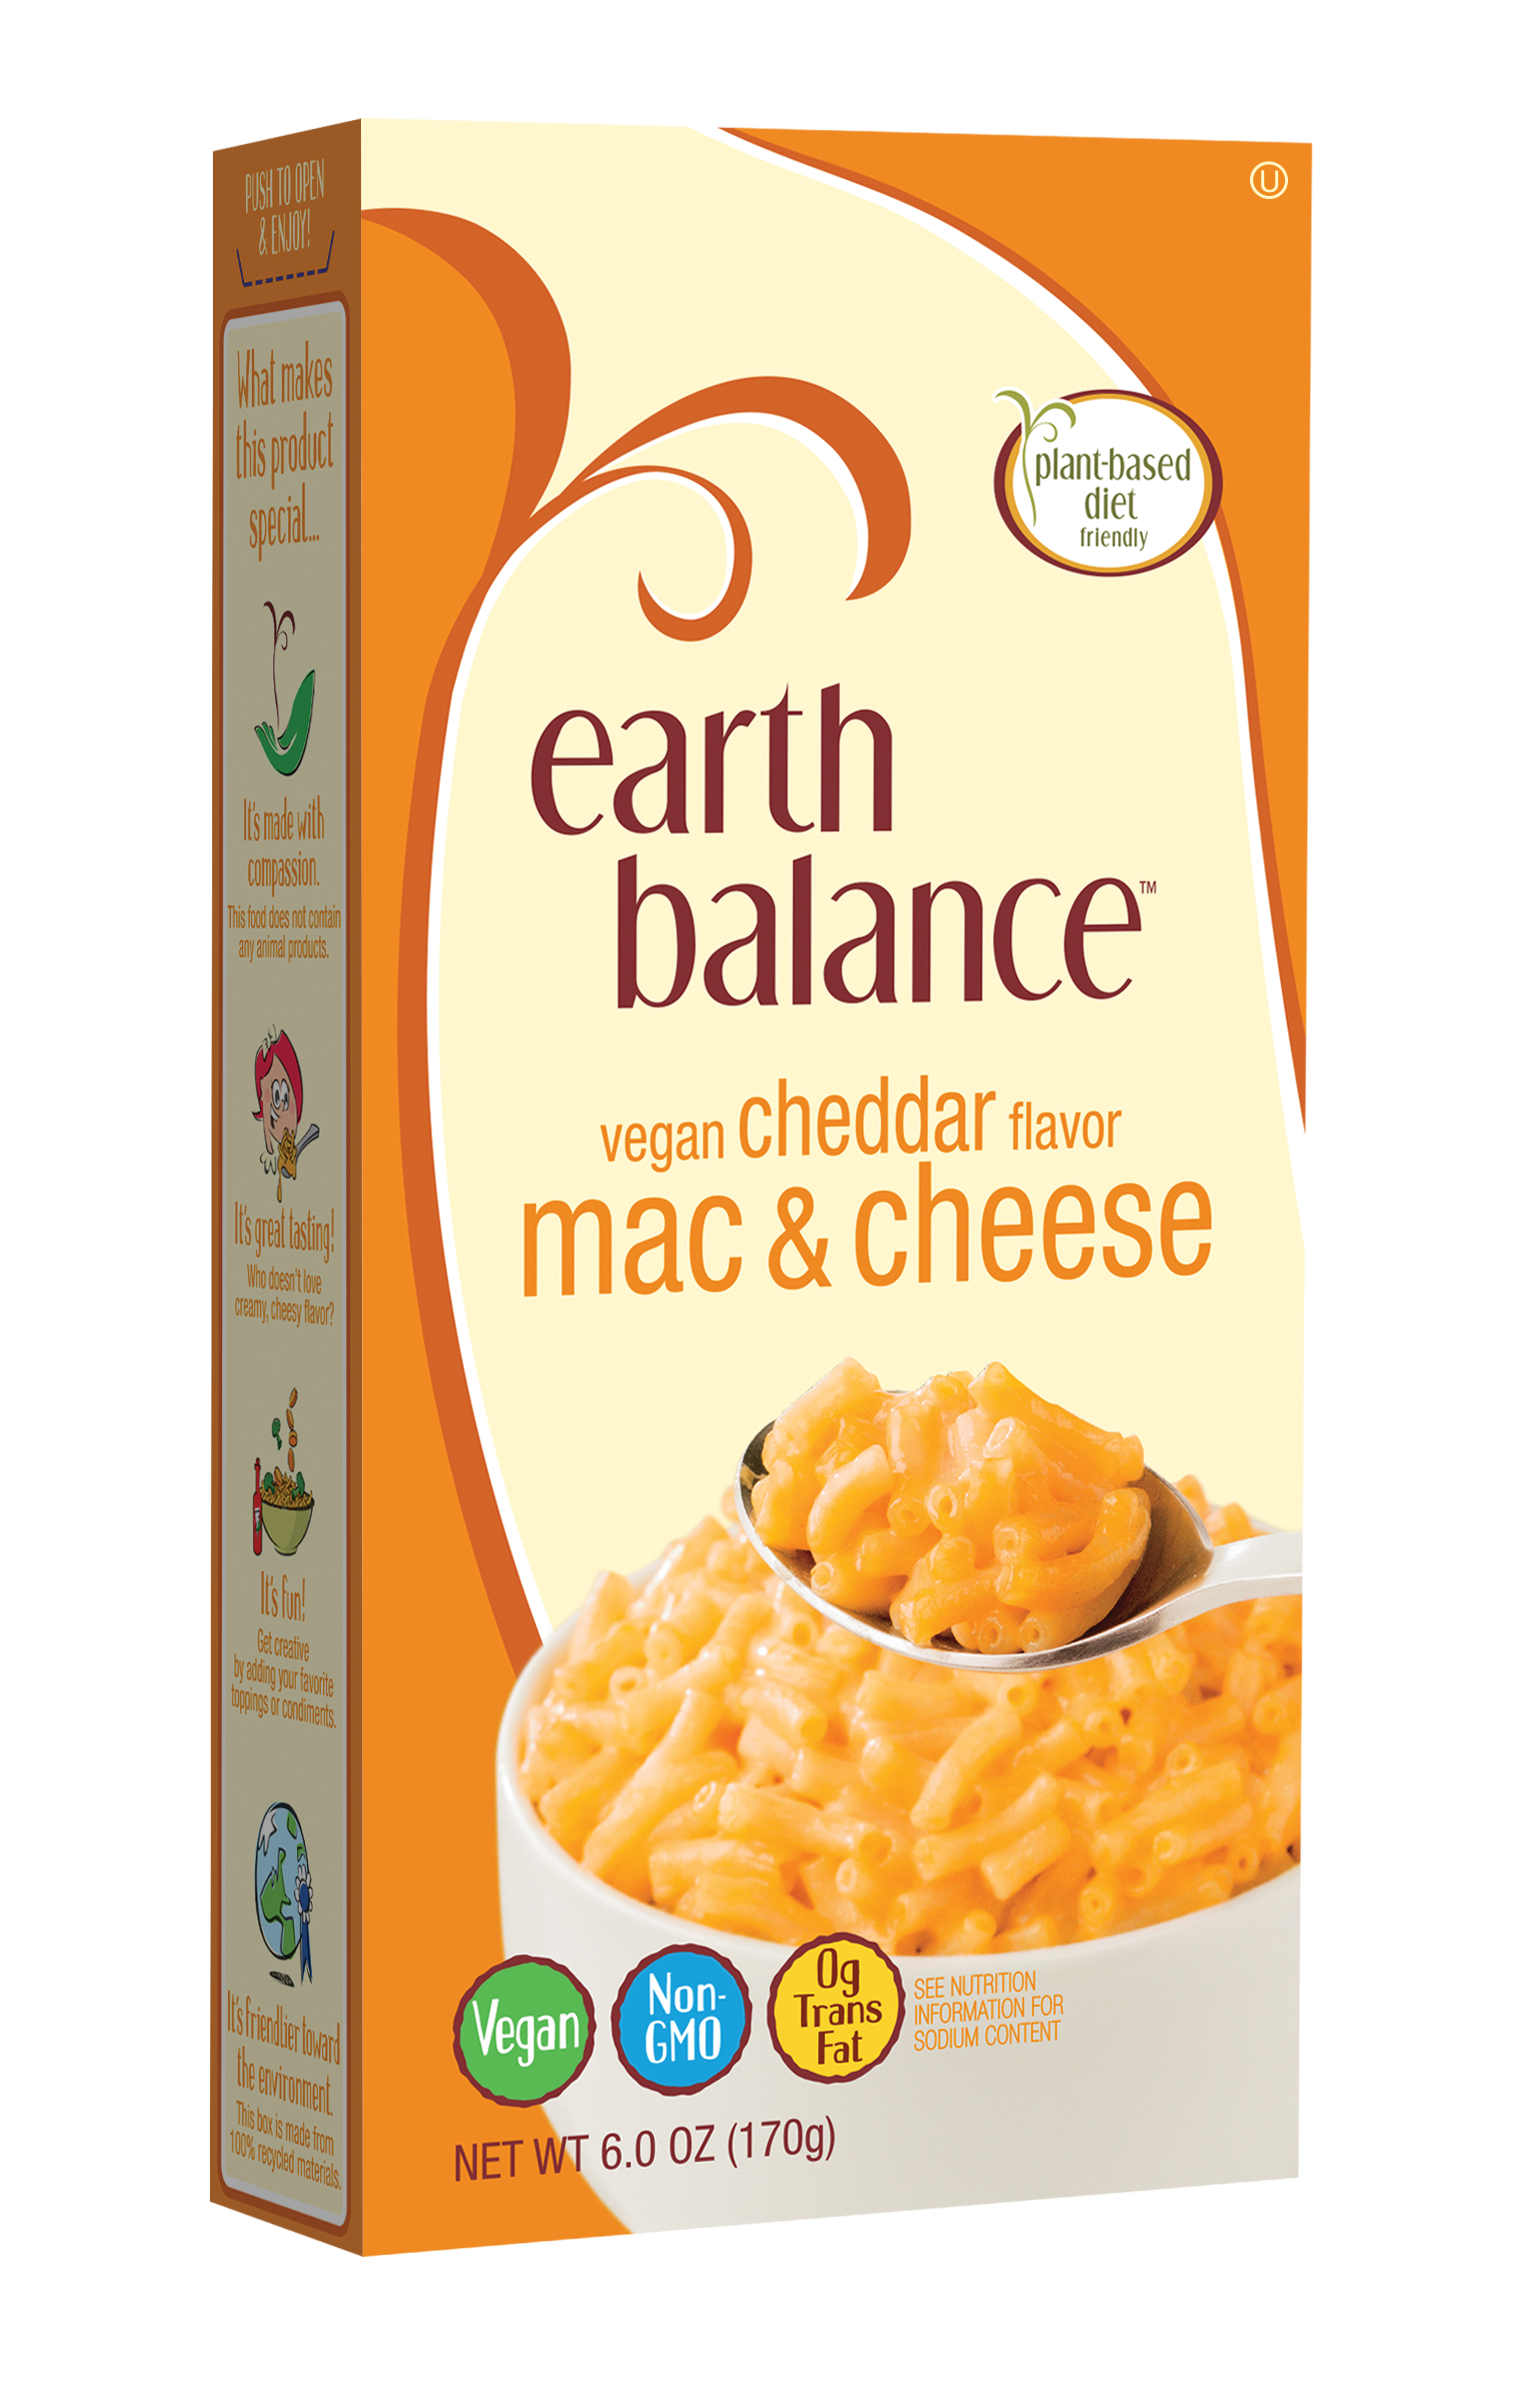 Earth Balance Vegan Cheddar Flavor Mac & Cheese